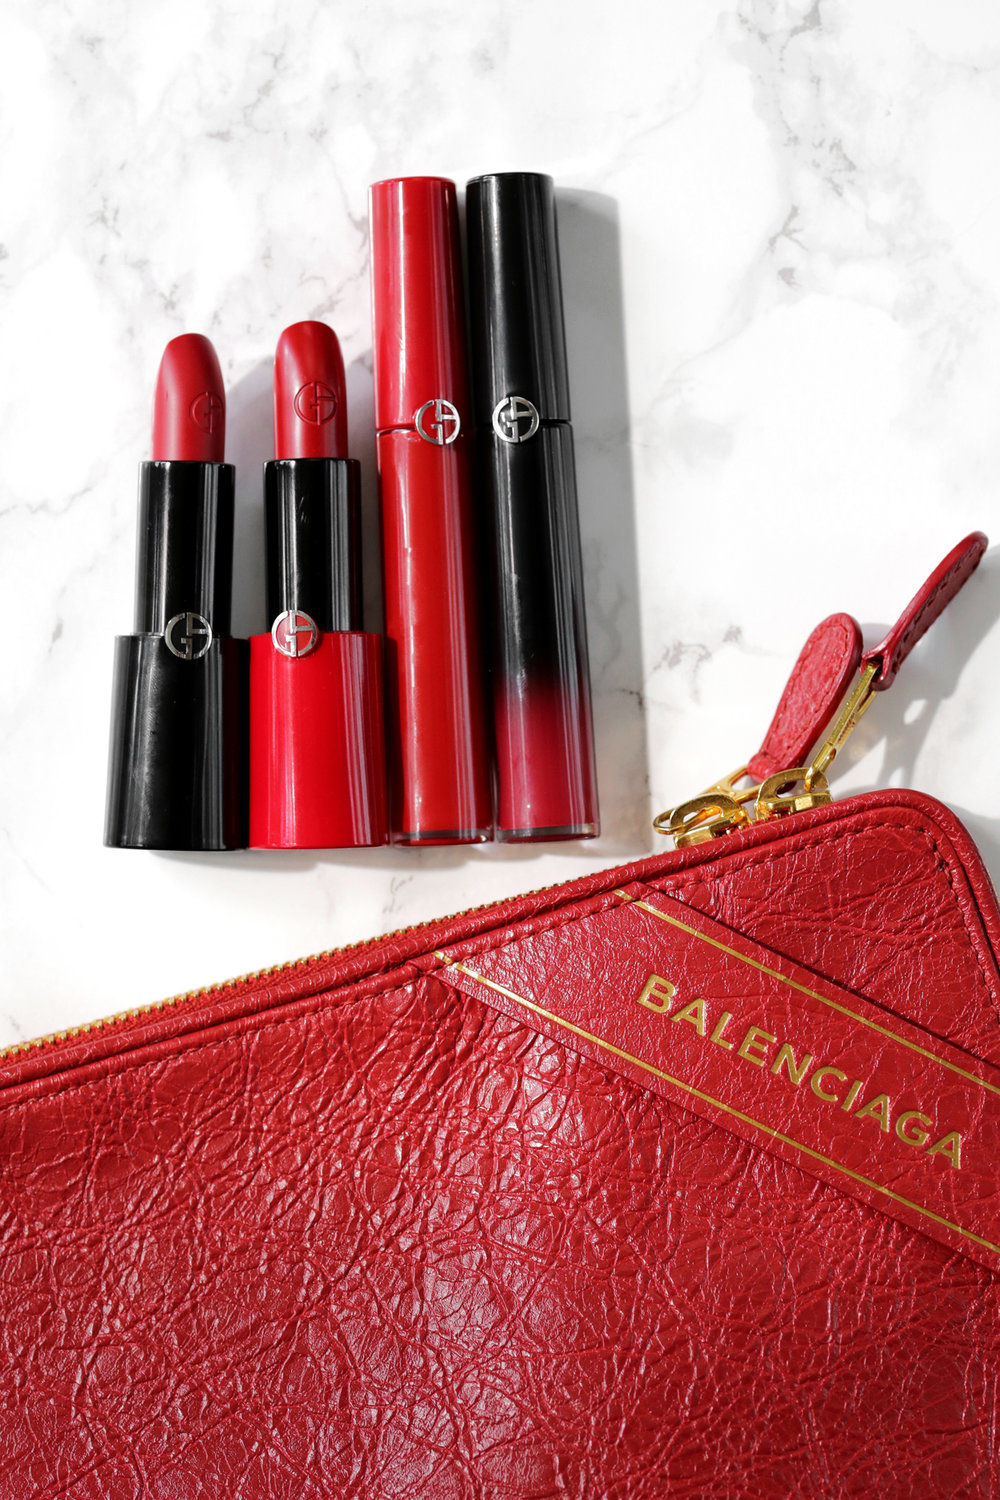 GIVENCHY 400 red lipstick - LIPSICK.ME - lipstick beauty blog_2546.jpg